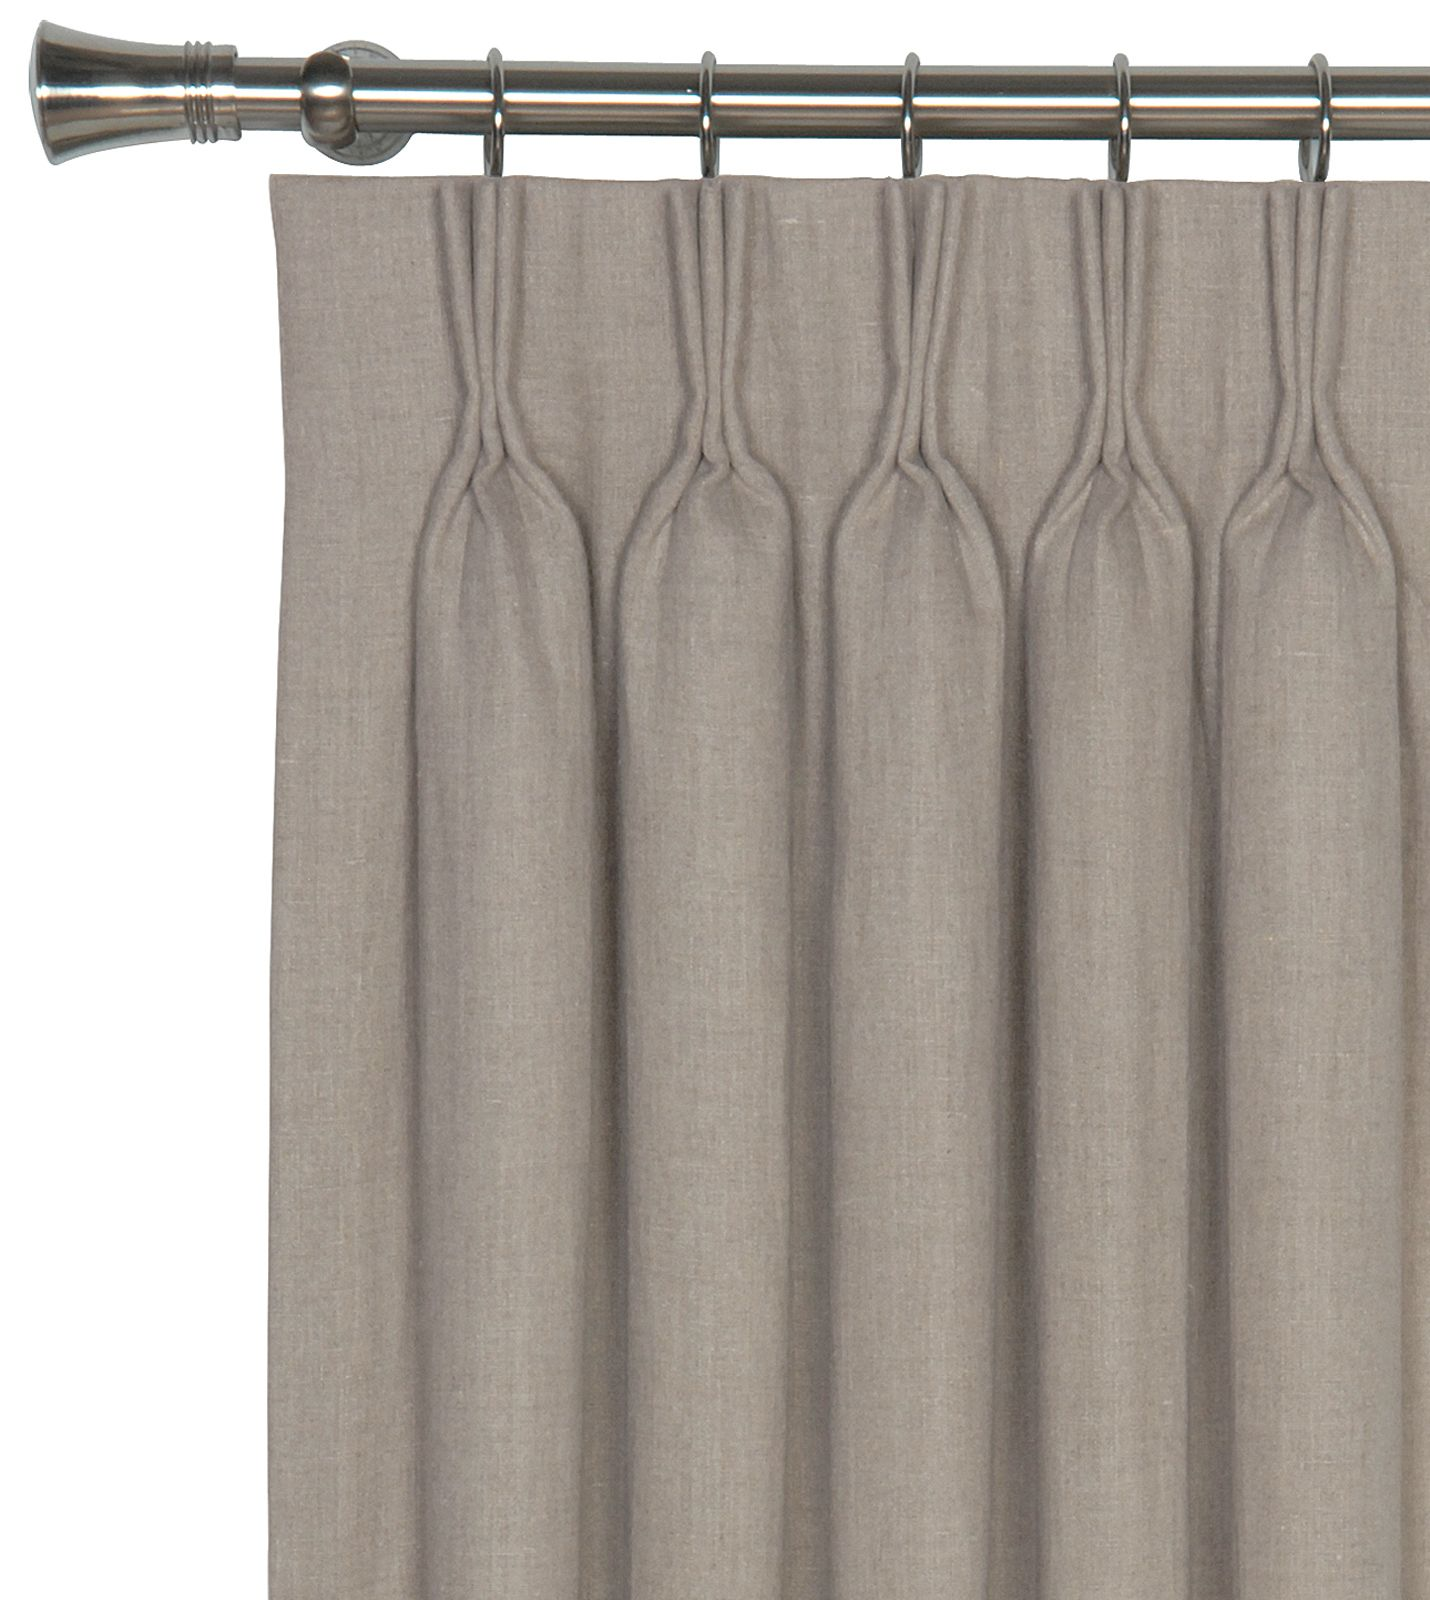 Luxury Bedding By Eastern Accents Breeze Linen Curtain Panel